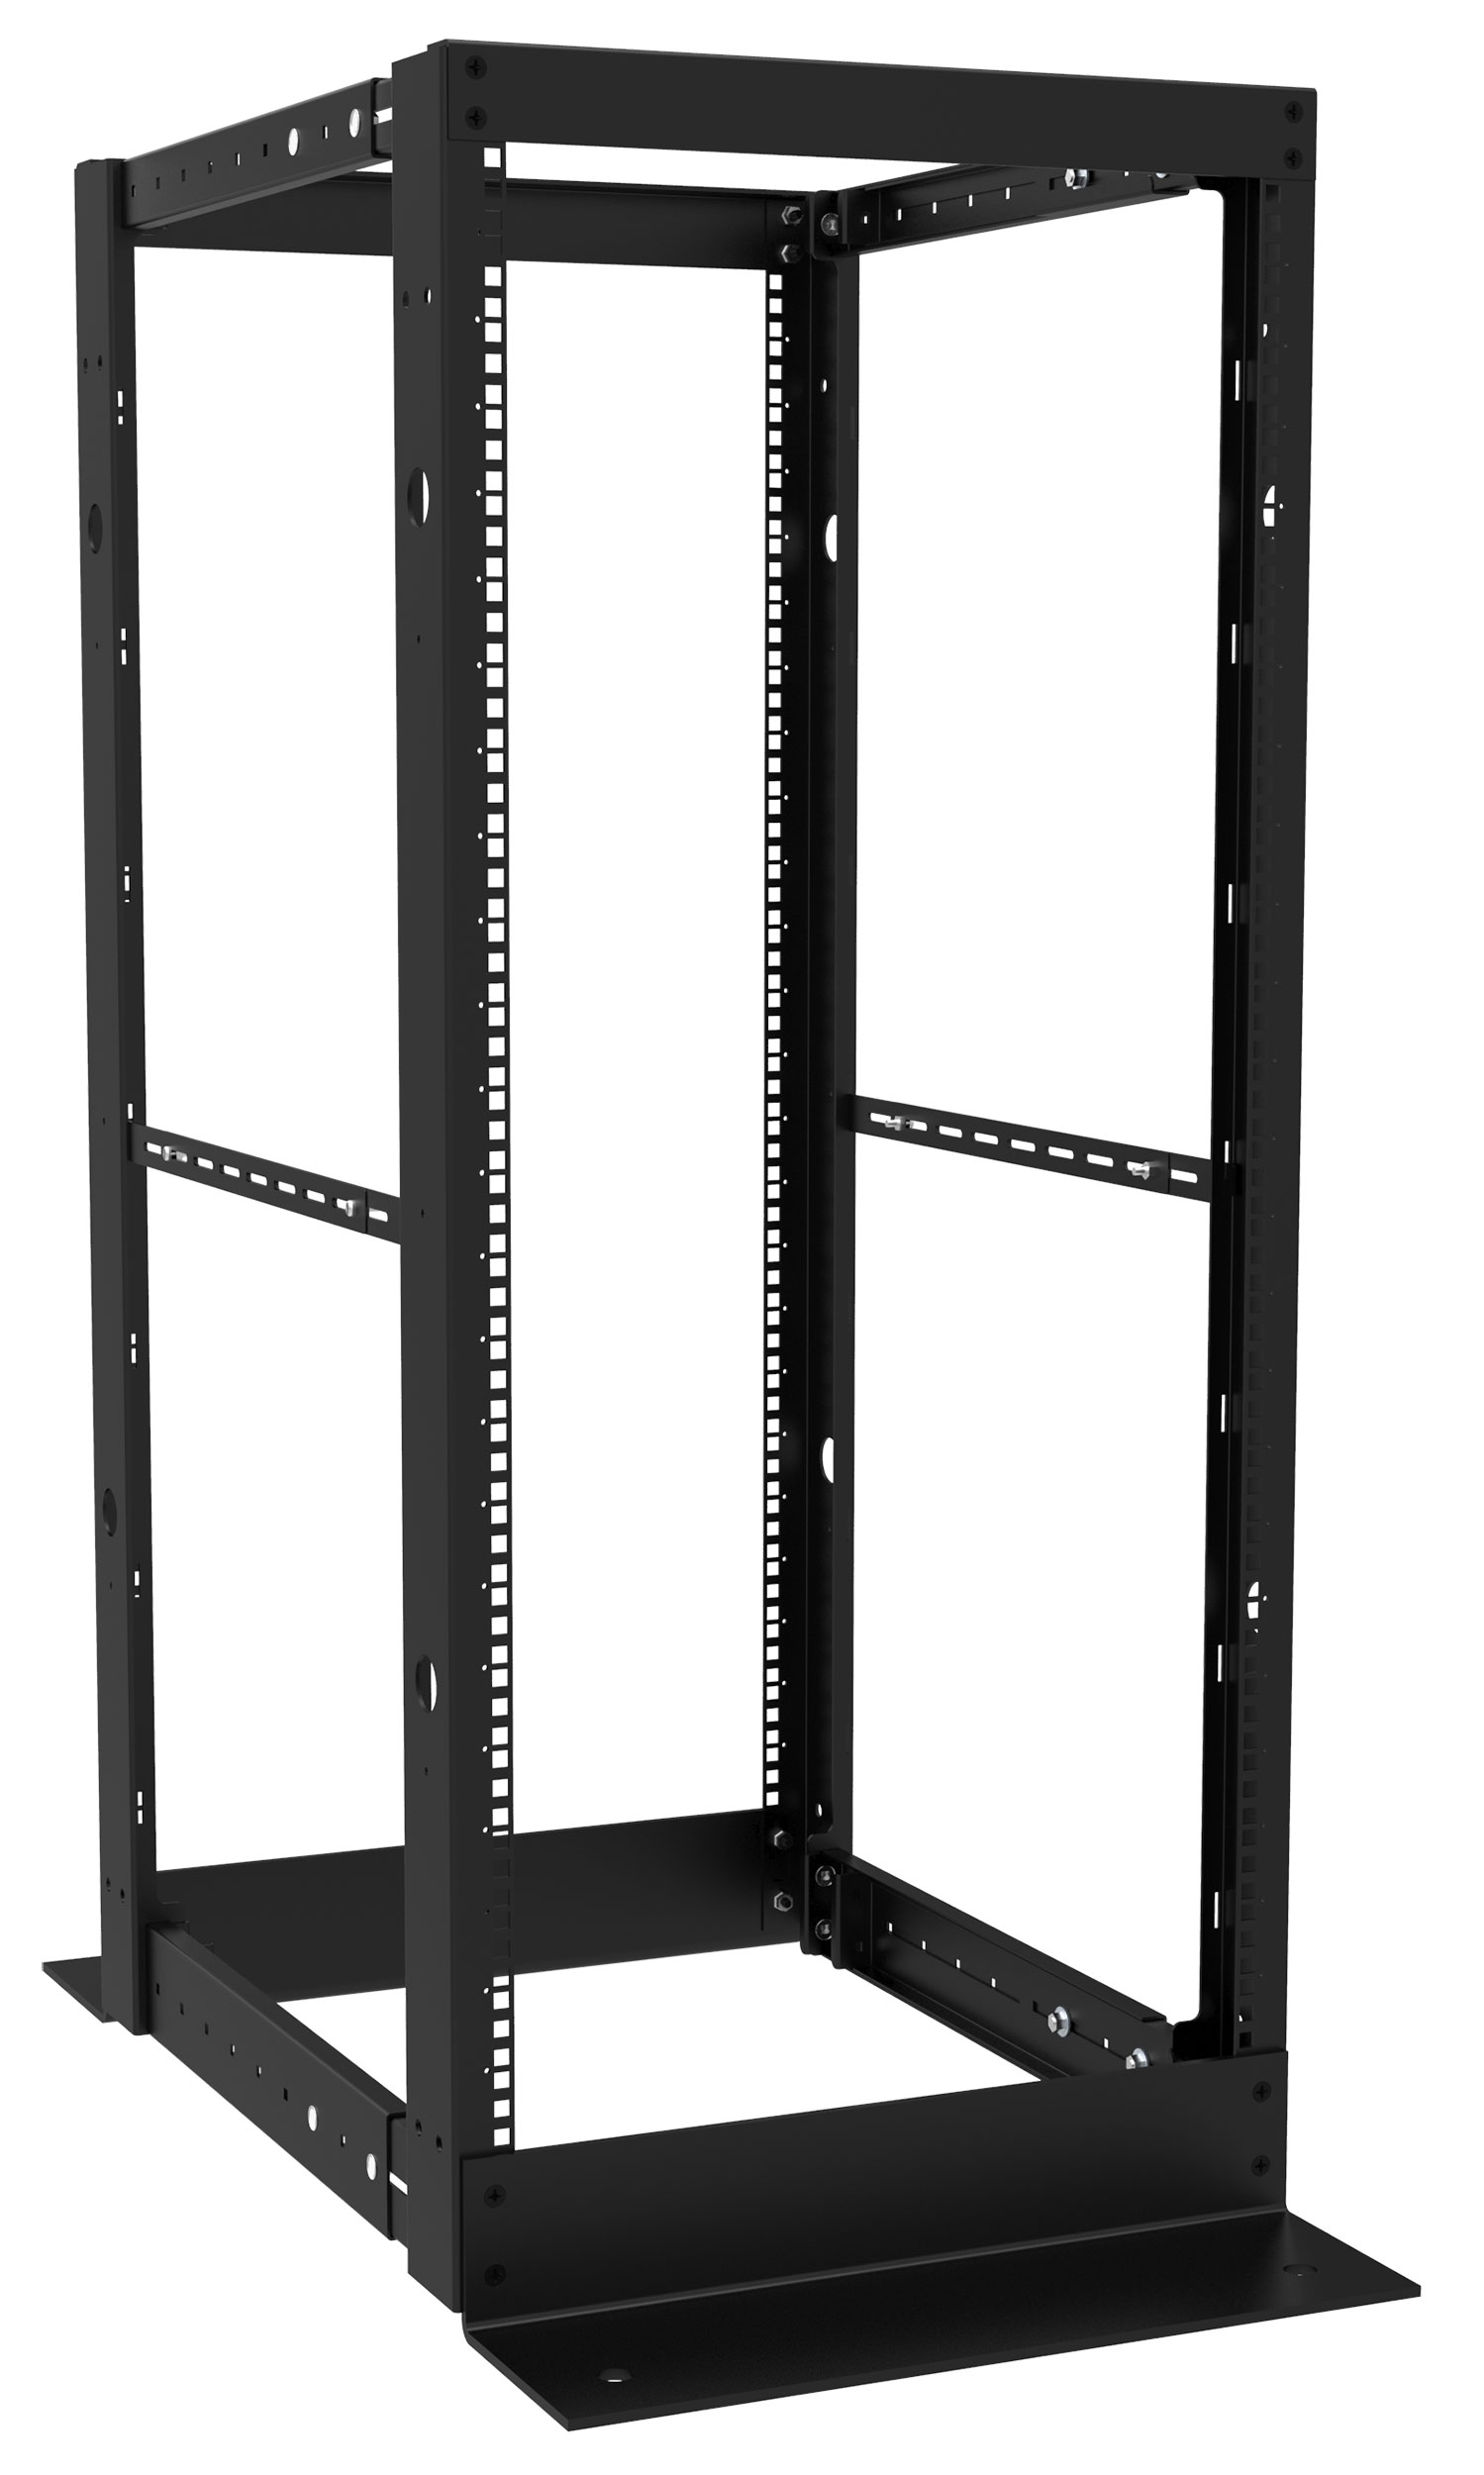 Knockdown Steel 4 Post Rack Dc4r Series Hammond Mfg